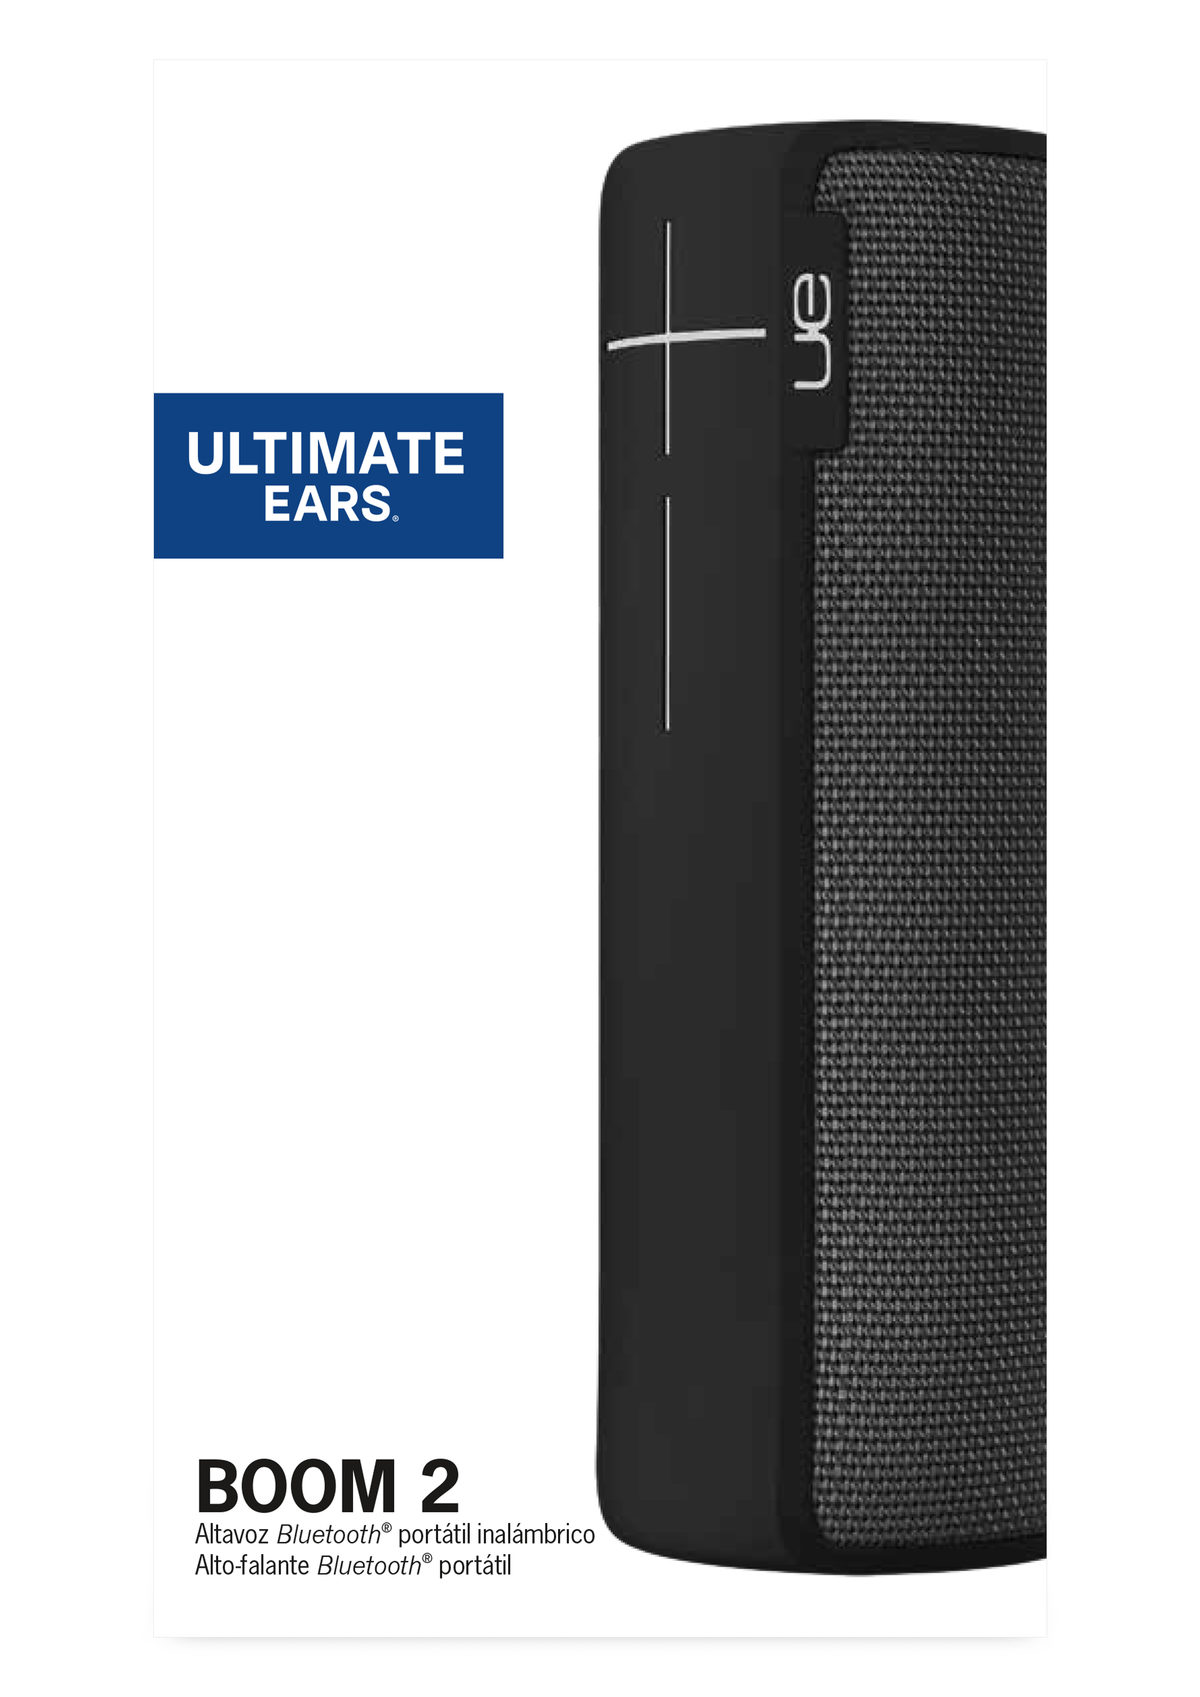 Ultimate Ears Boom 2 Portable Bluetooth Speaker En Us